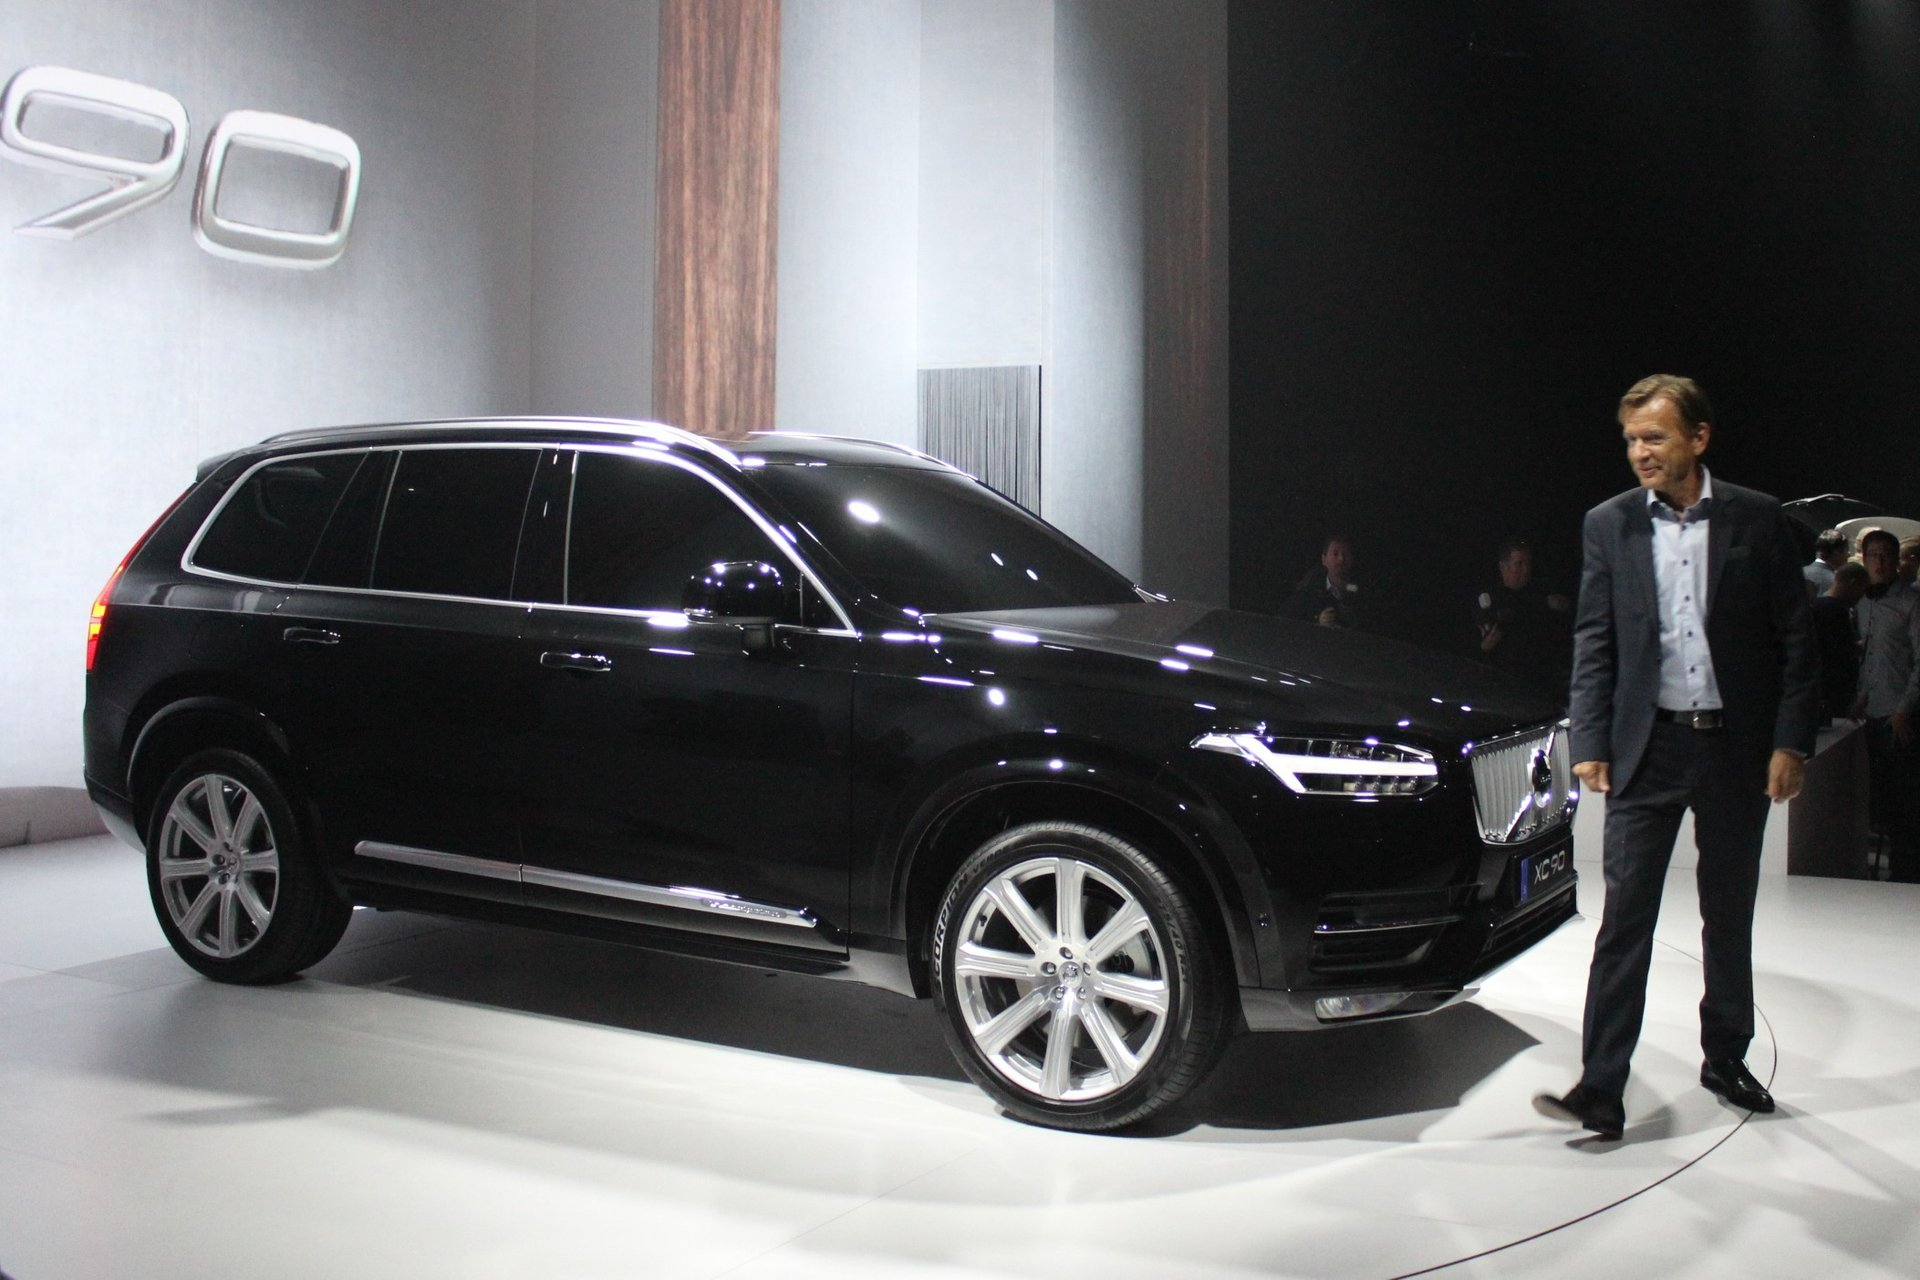 2016 Volvo XC90 Preview: Full Details, First Photos & Video